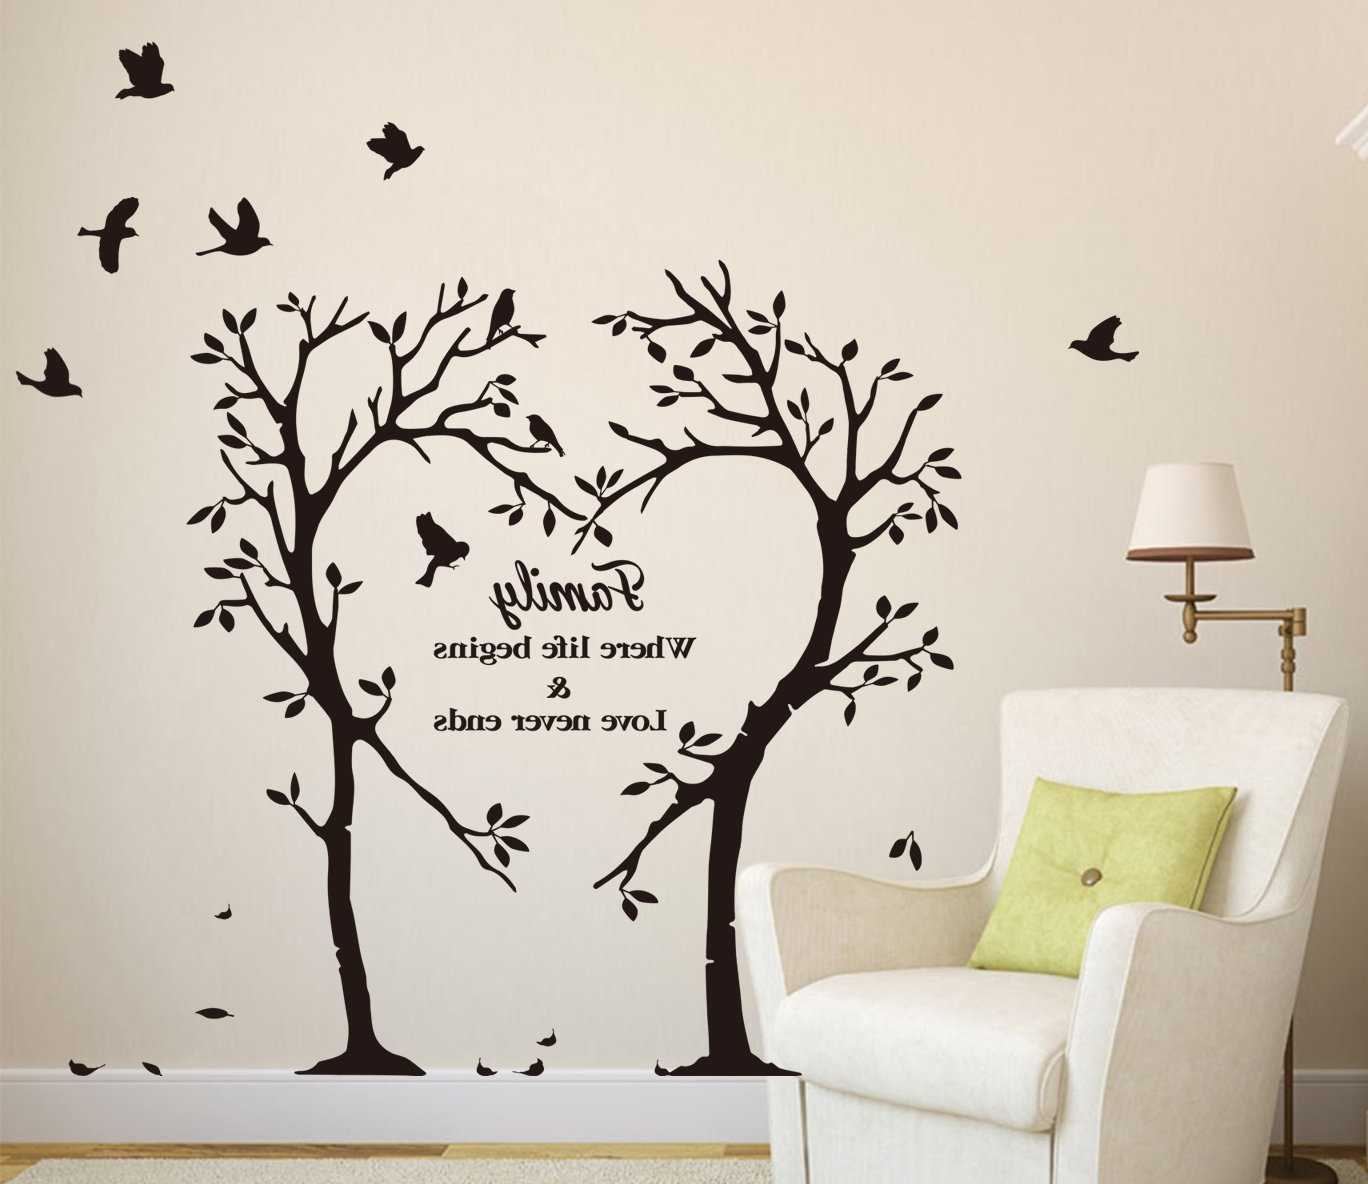 Most Popular Family Tree Wall Art Pertaining To Large Family Inspirational Love Tree Wall Art Sticker, Wall Sticker (View 9 of 15)